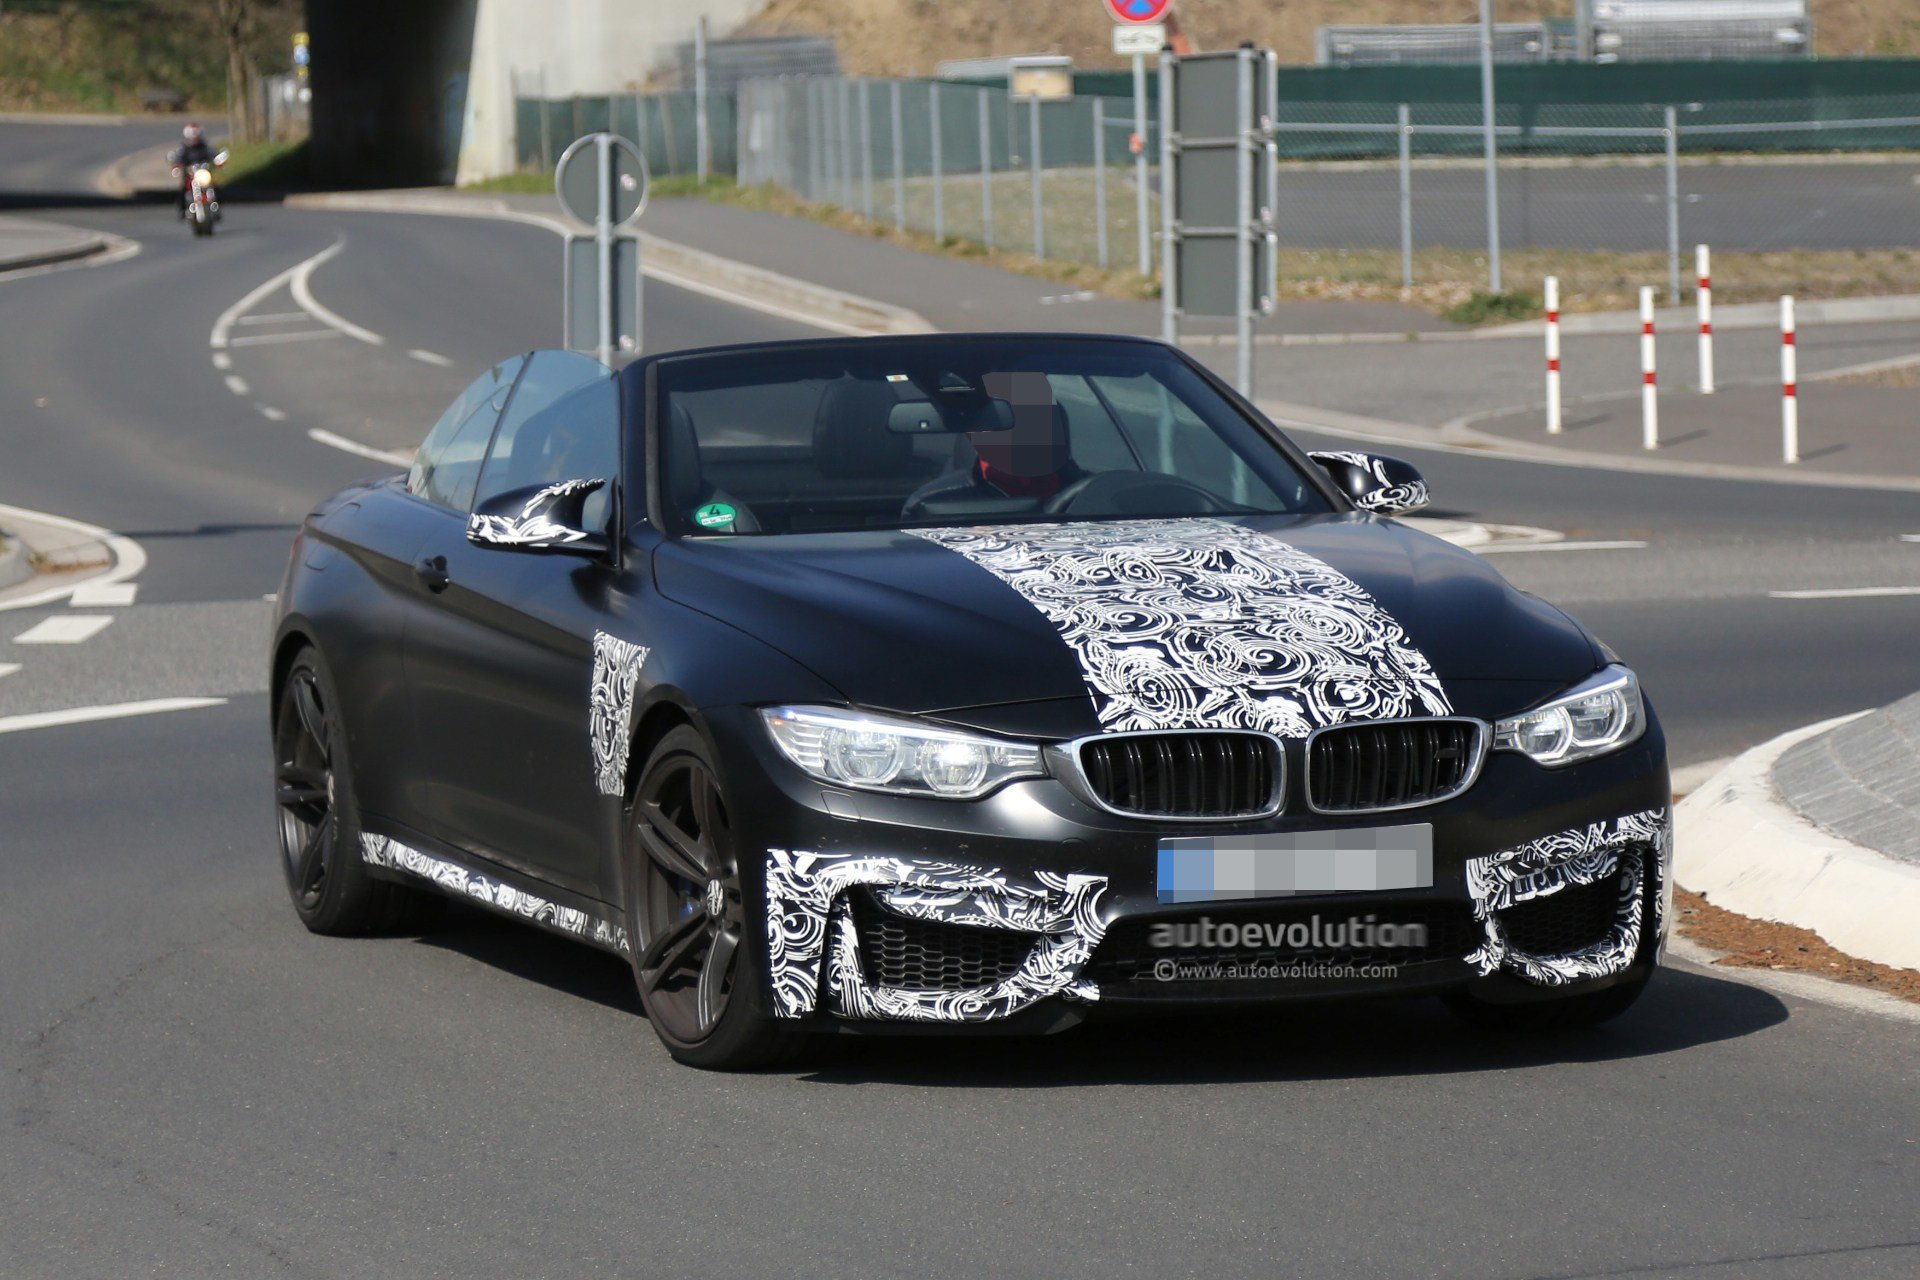 Latest Spyshots Bmw M4 Convertible Caught With The Top Down Free Download